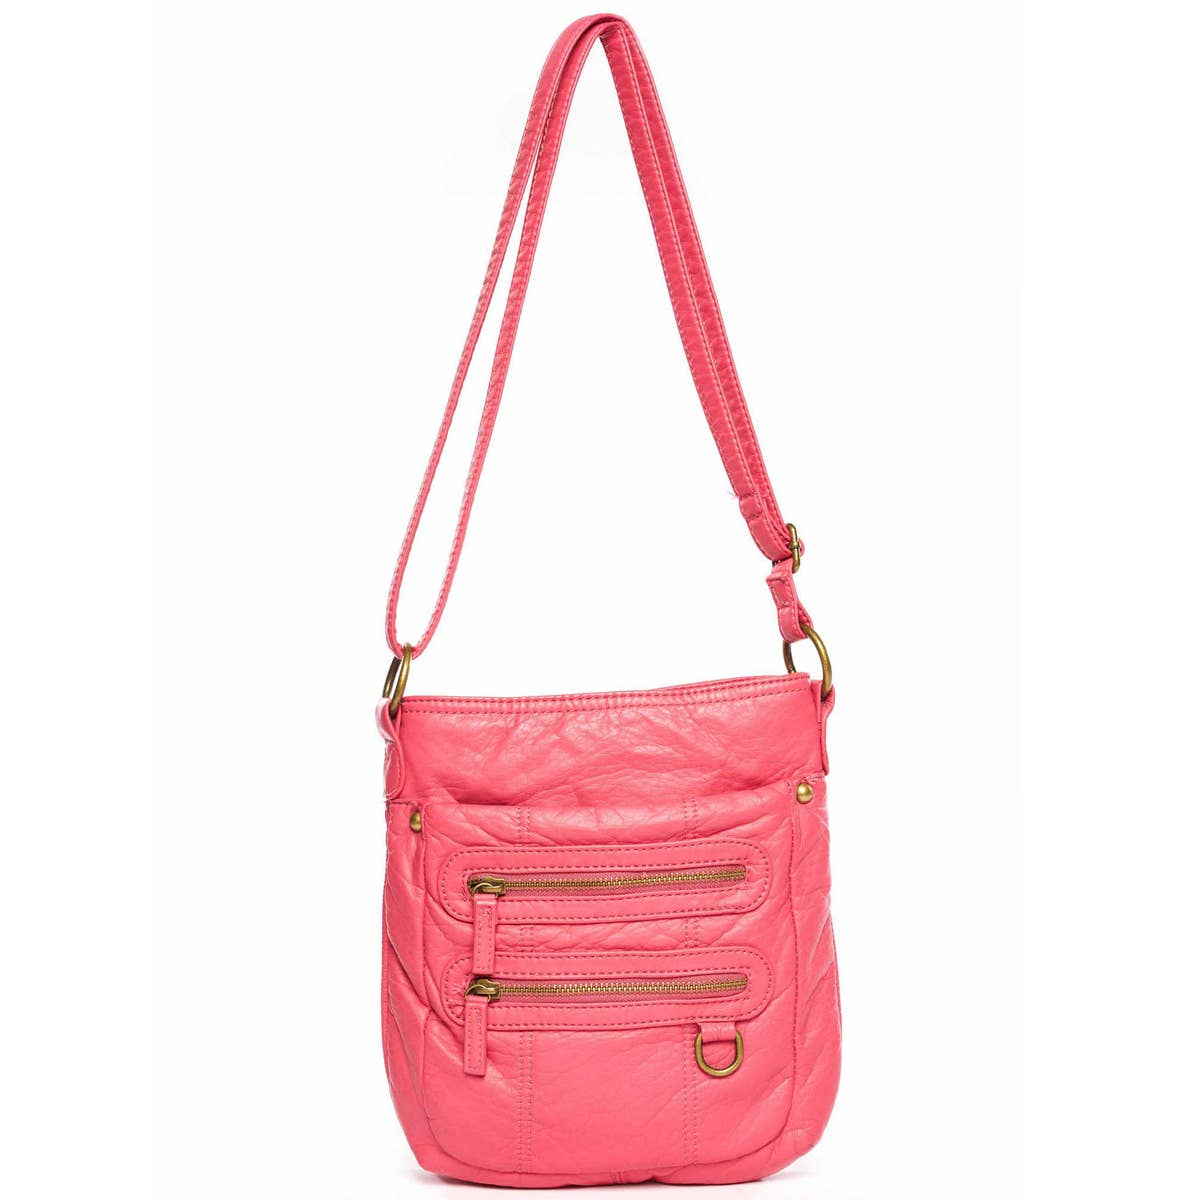 The Willa Crossbody